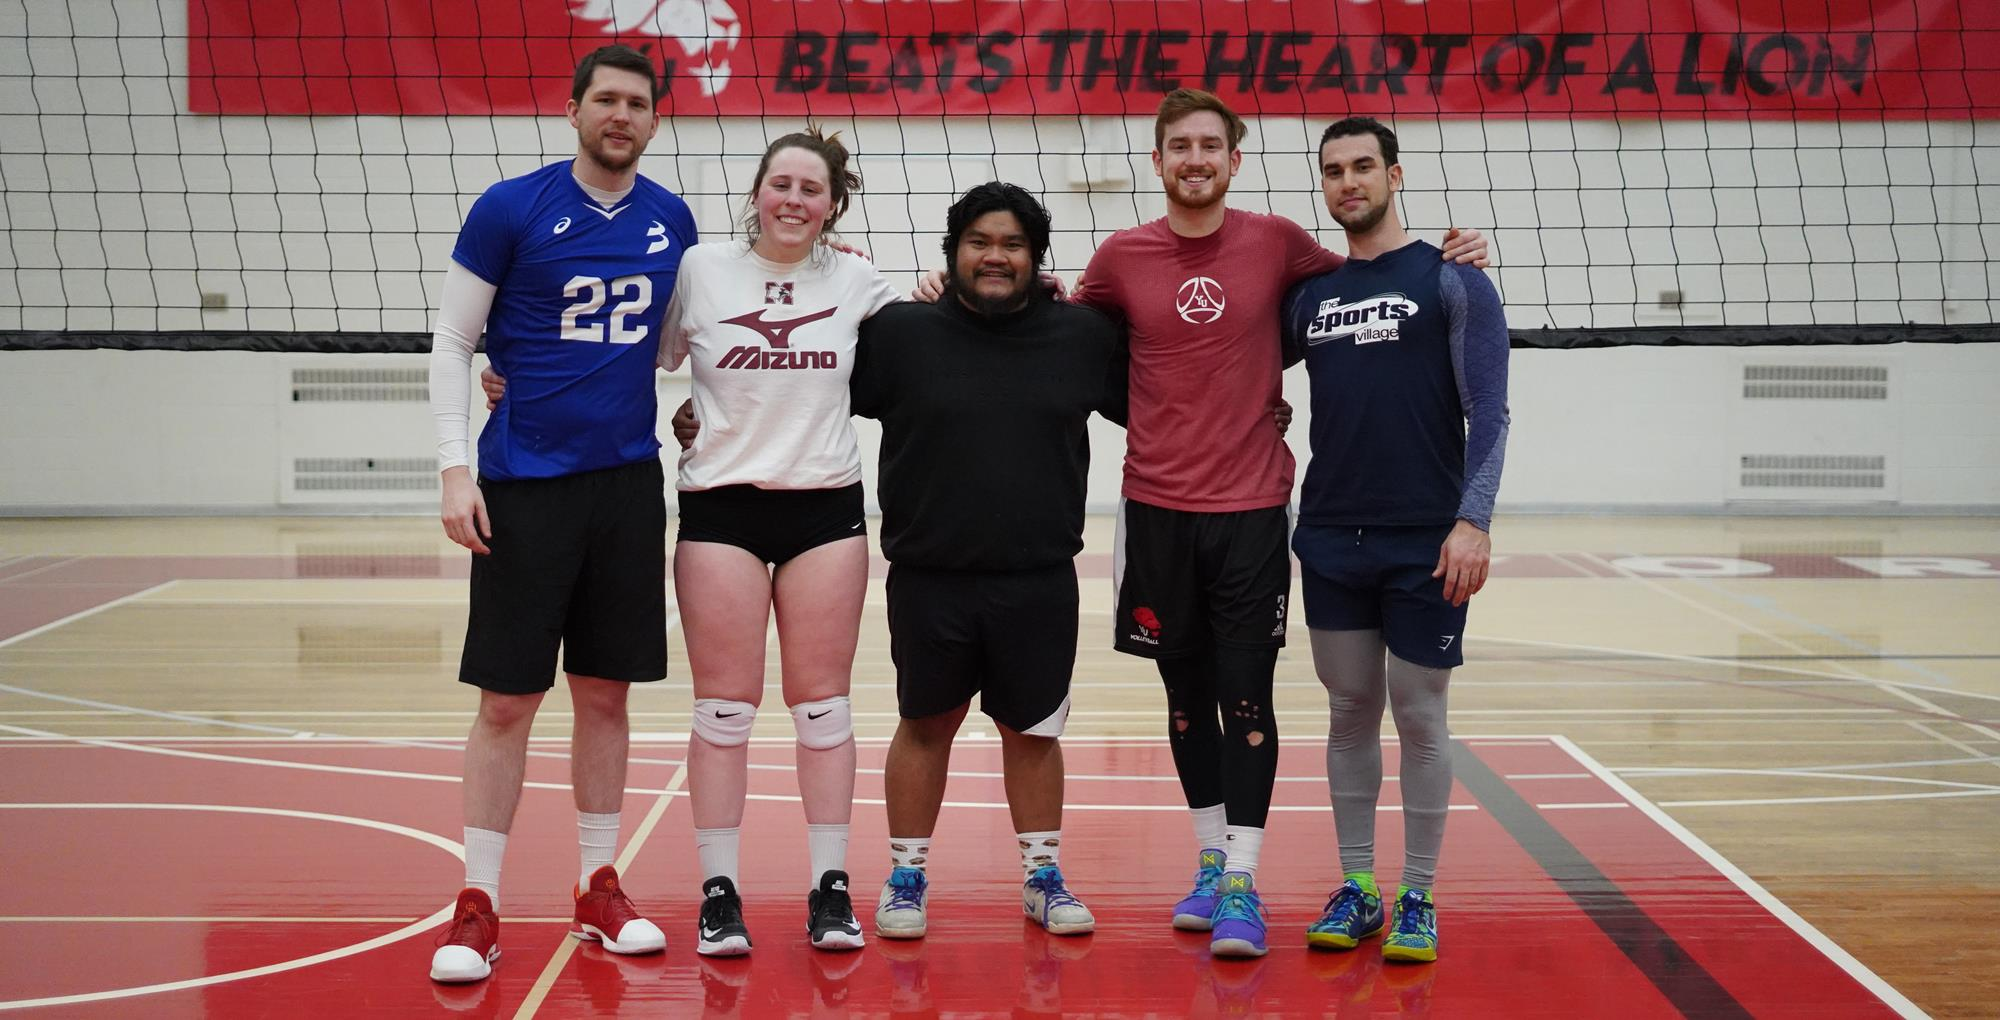 SUGAR AND SPIKE NAMED 2019 RAGE VOLLEYBALL CHAMPION - York